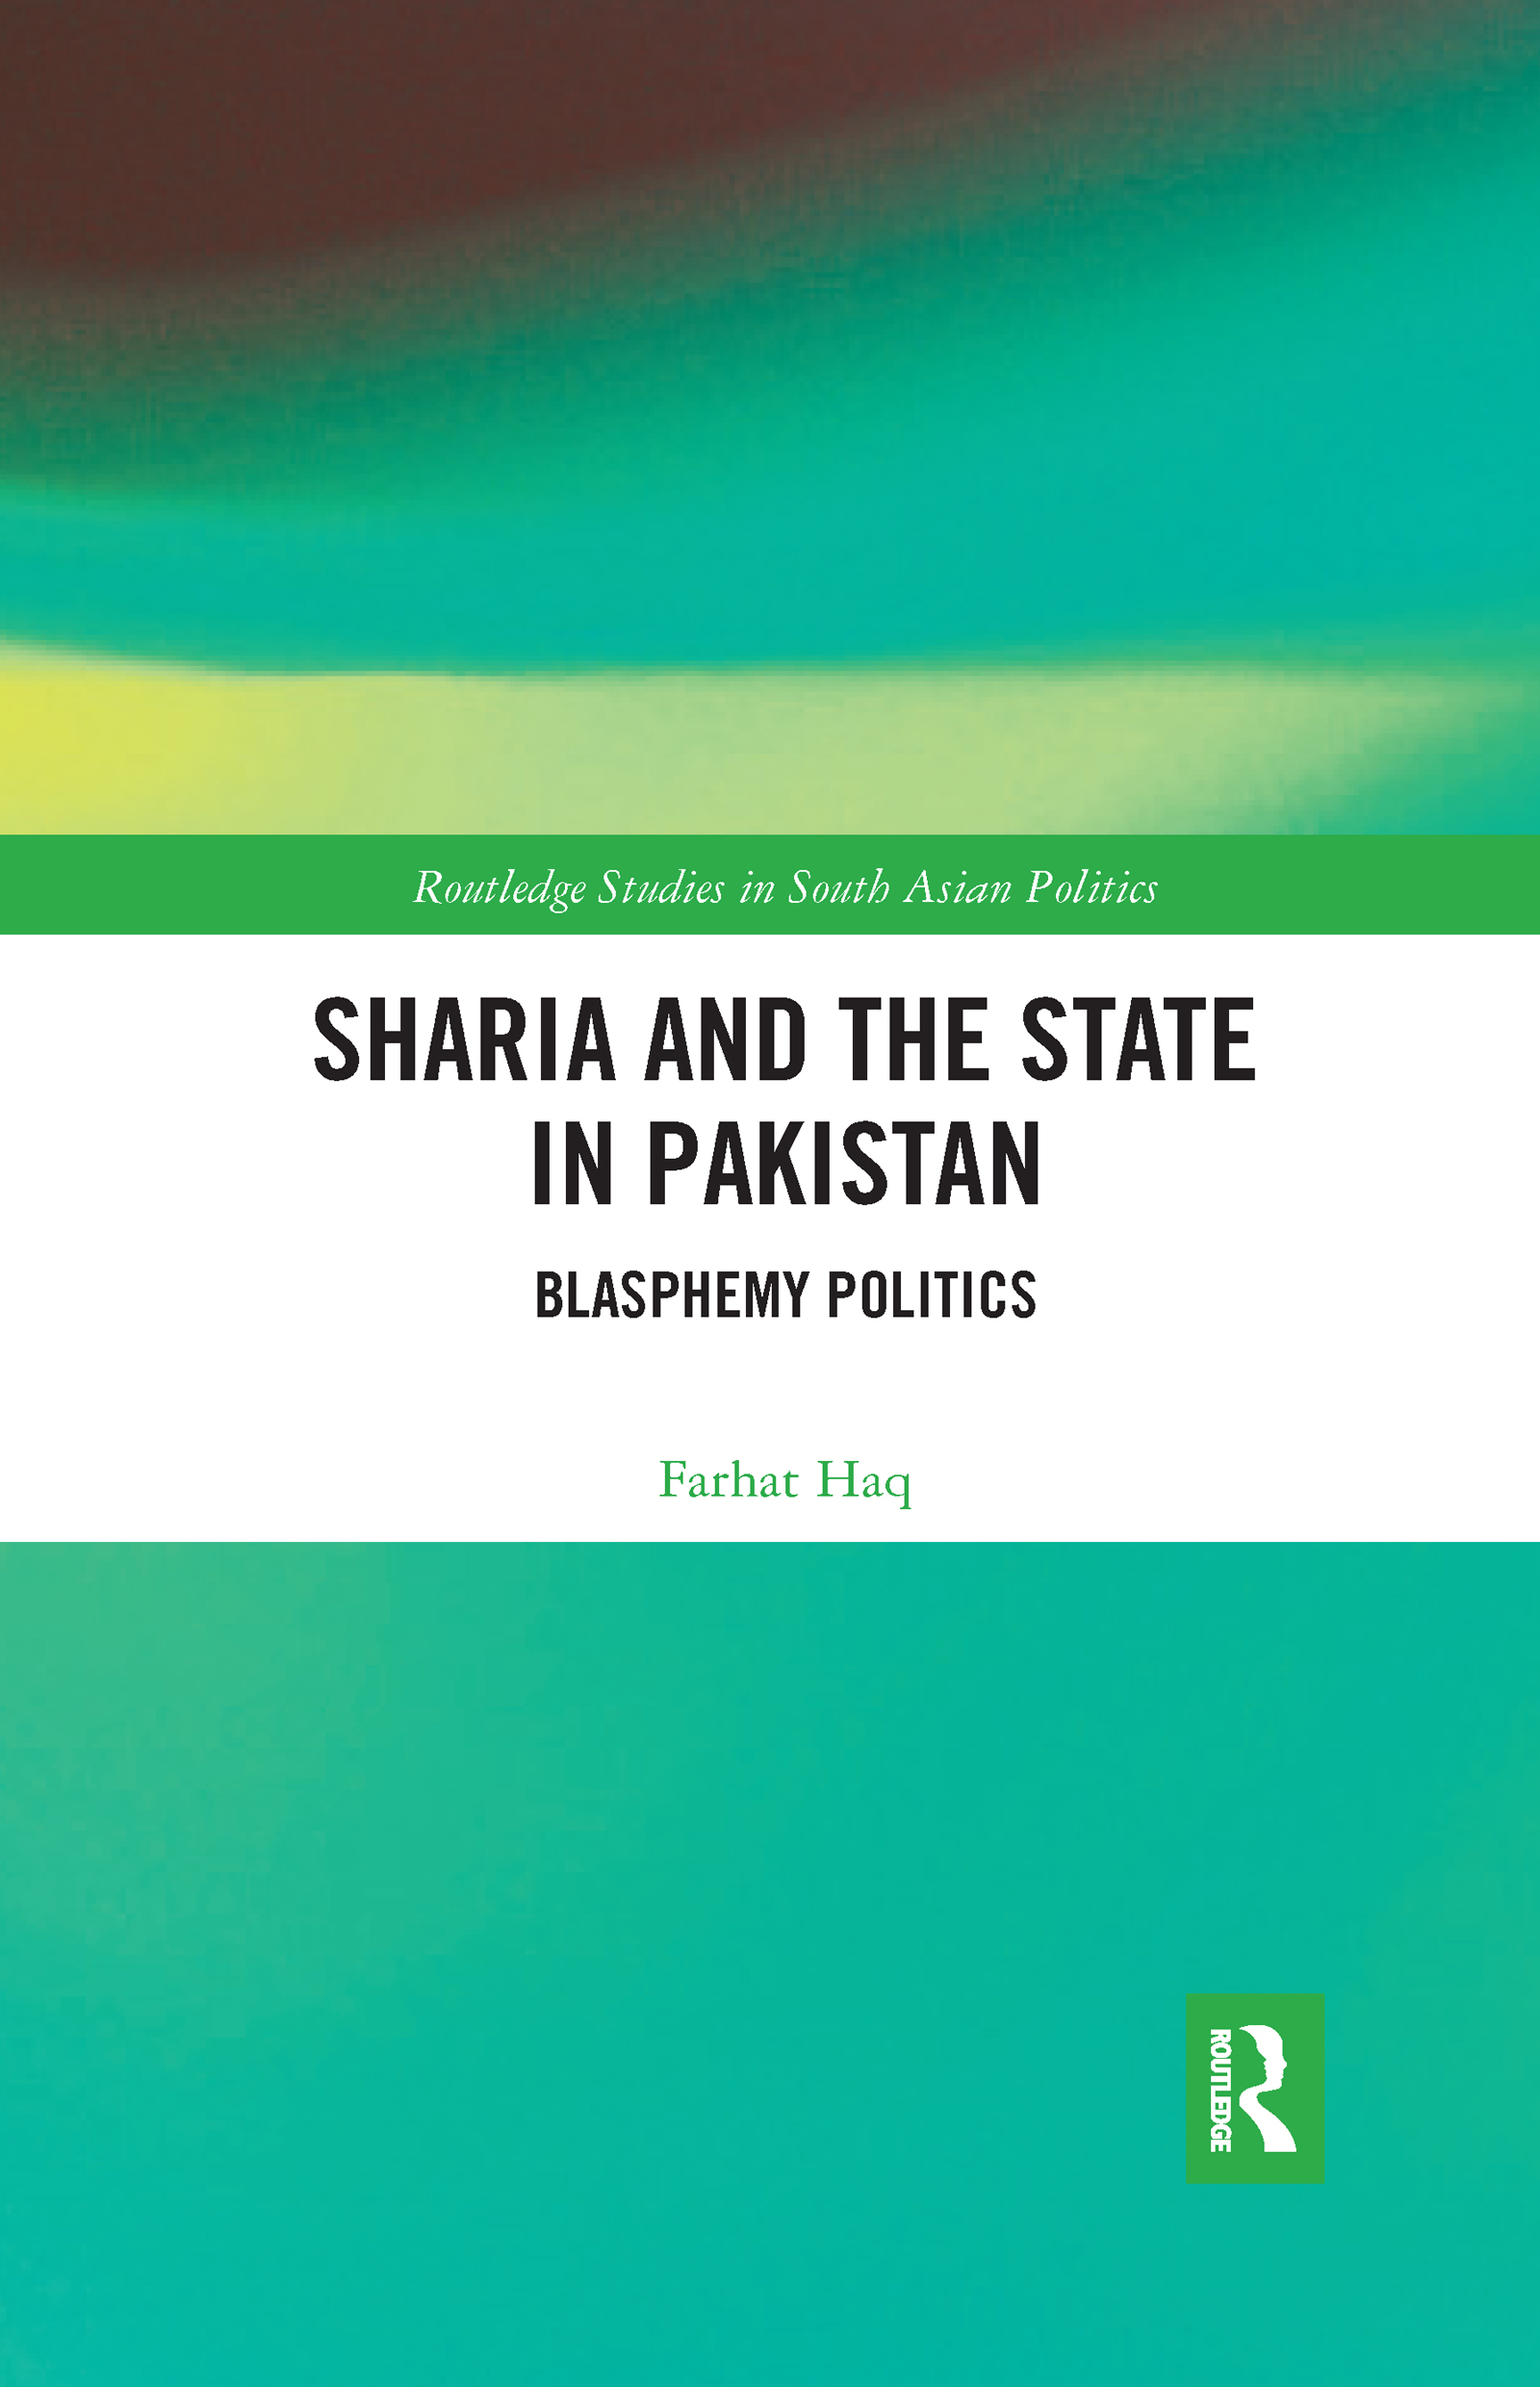 Sharia and the State in Pakistan